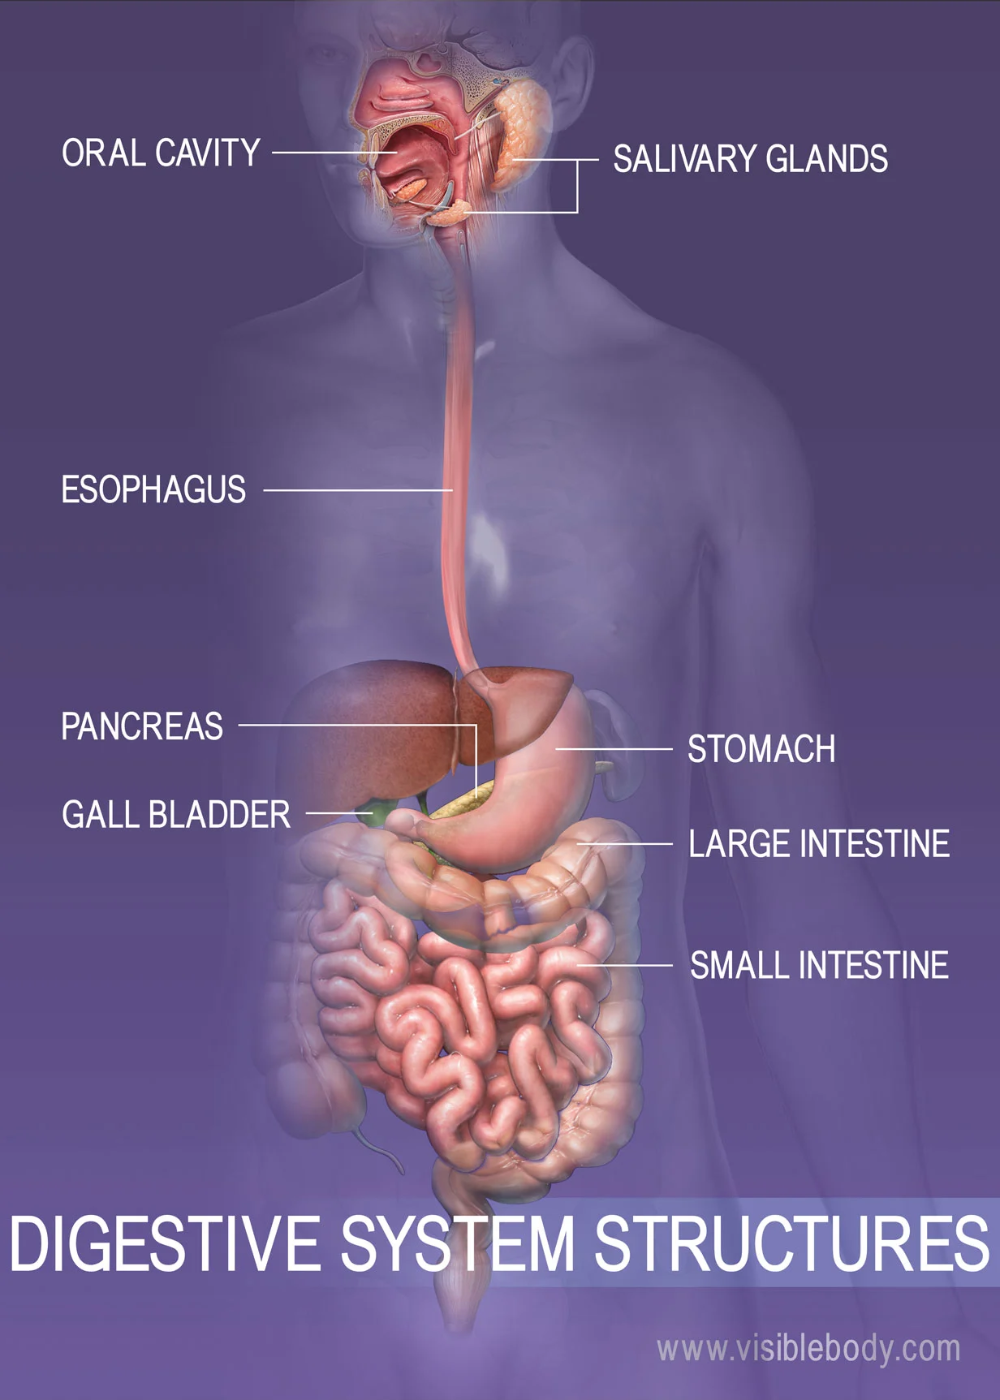 Overview Of The Digestive System Human Digestive System Digestive System Digestion